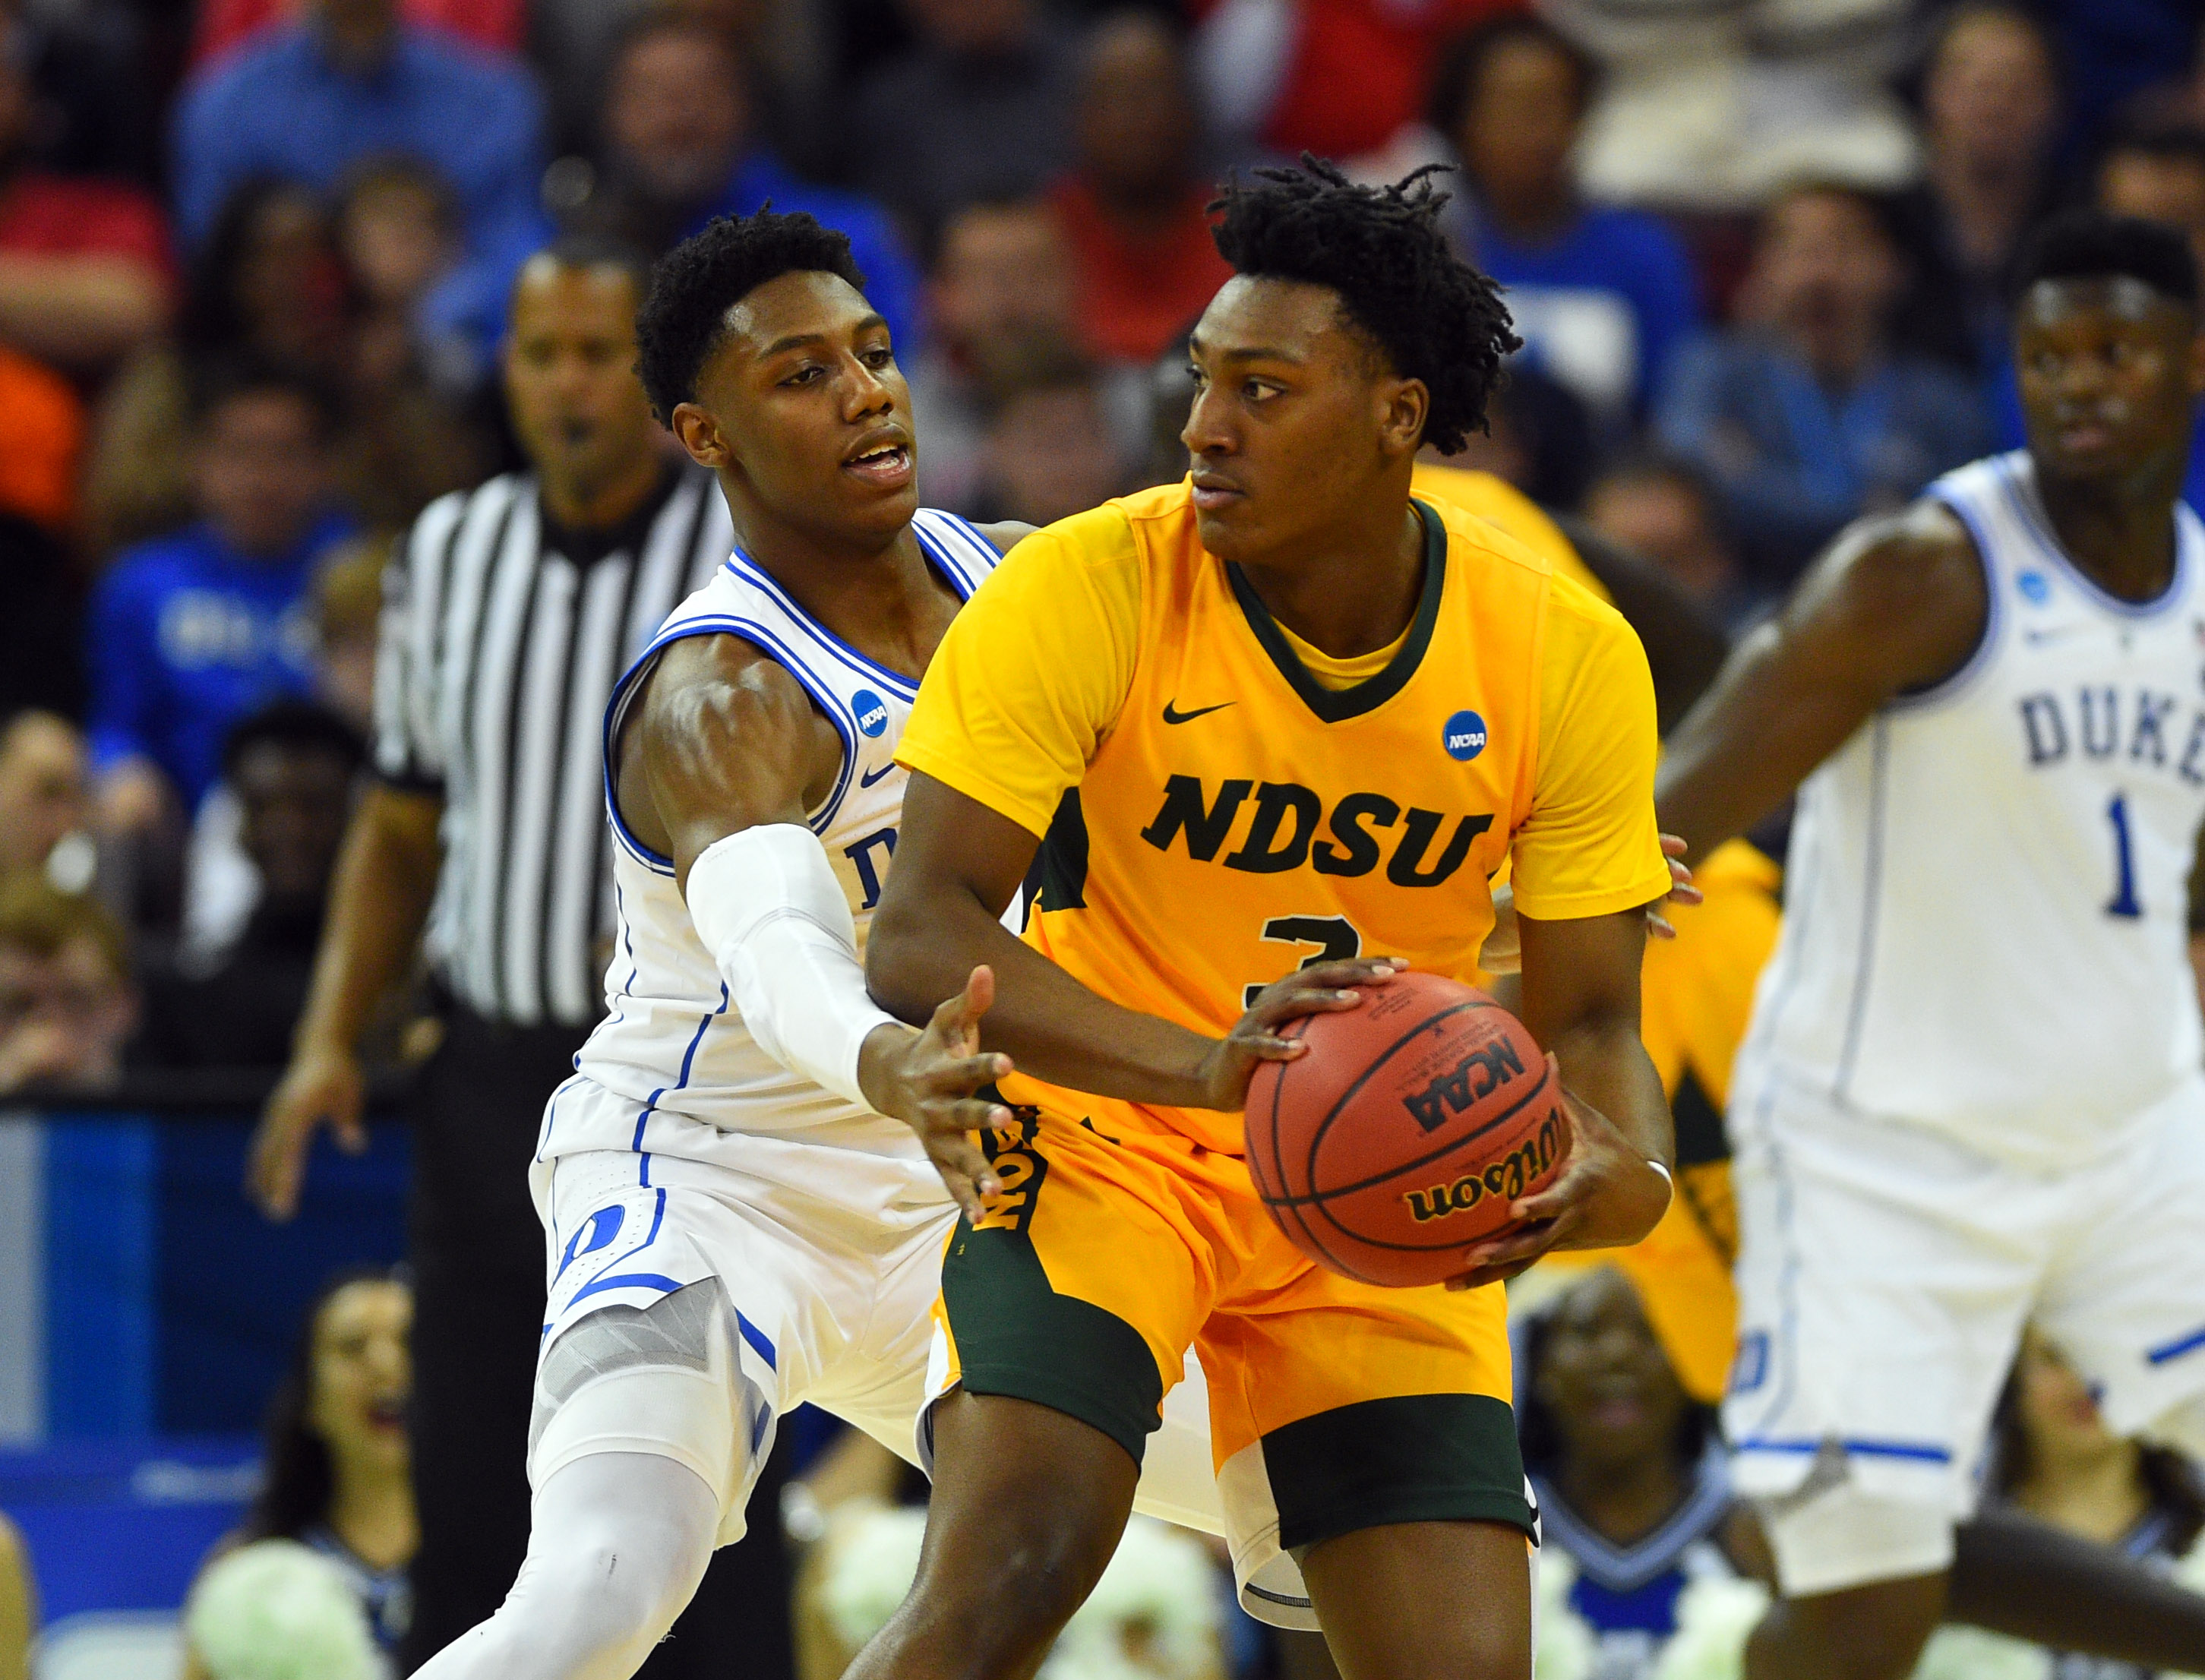 North Dakota State Bison guard Tyree Eady looks to pass during the first half of the game against the Duke Blue Devils in the first round of the 2019 NCAA Tournament at Colonial Life Arena.